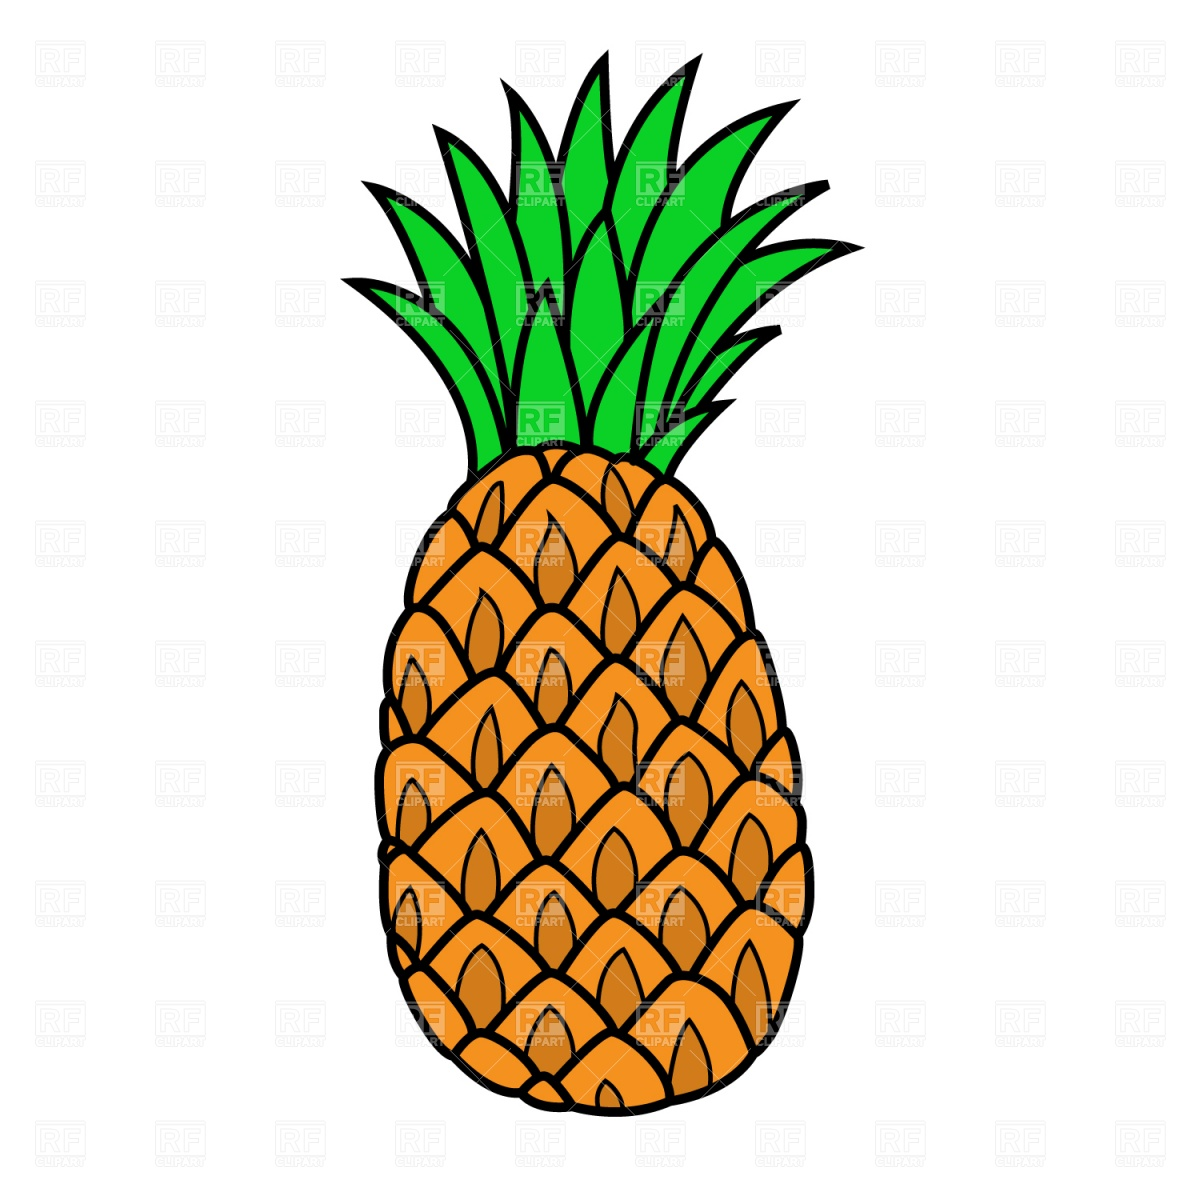 Pineapple Clipart-pineapple clipart-1